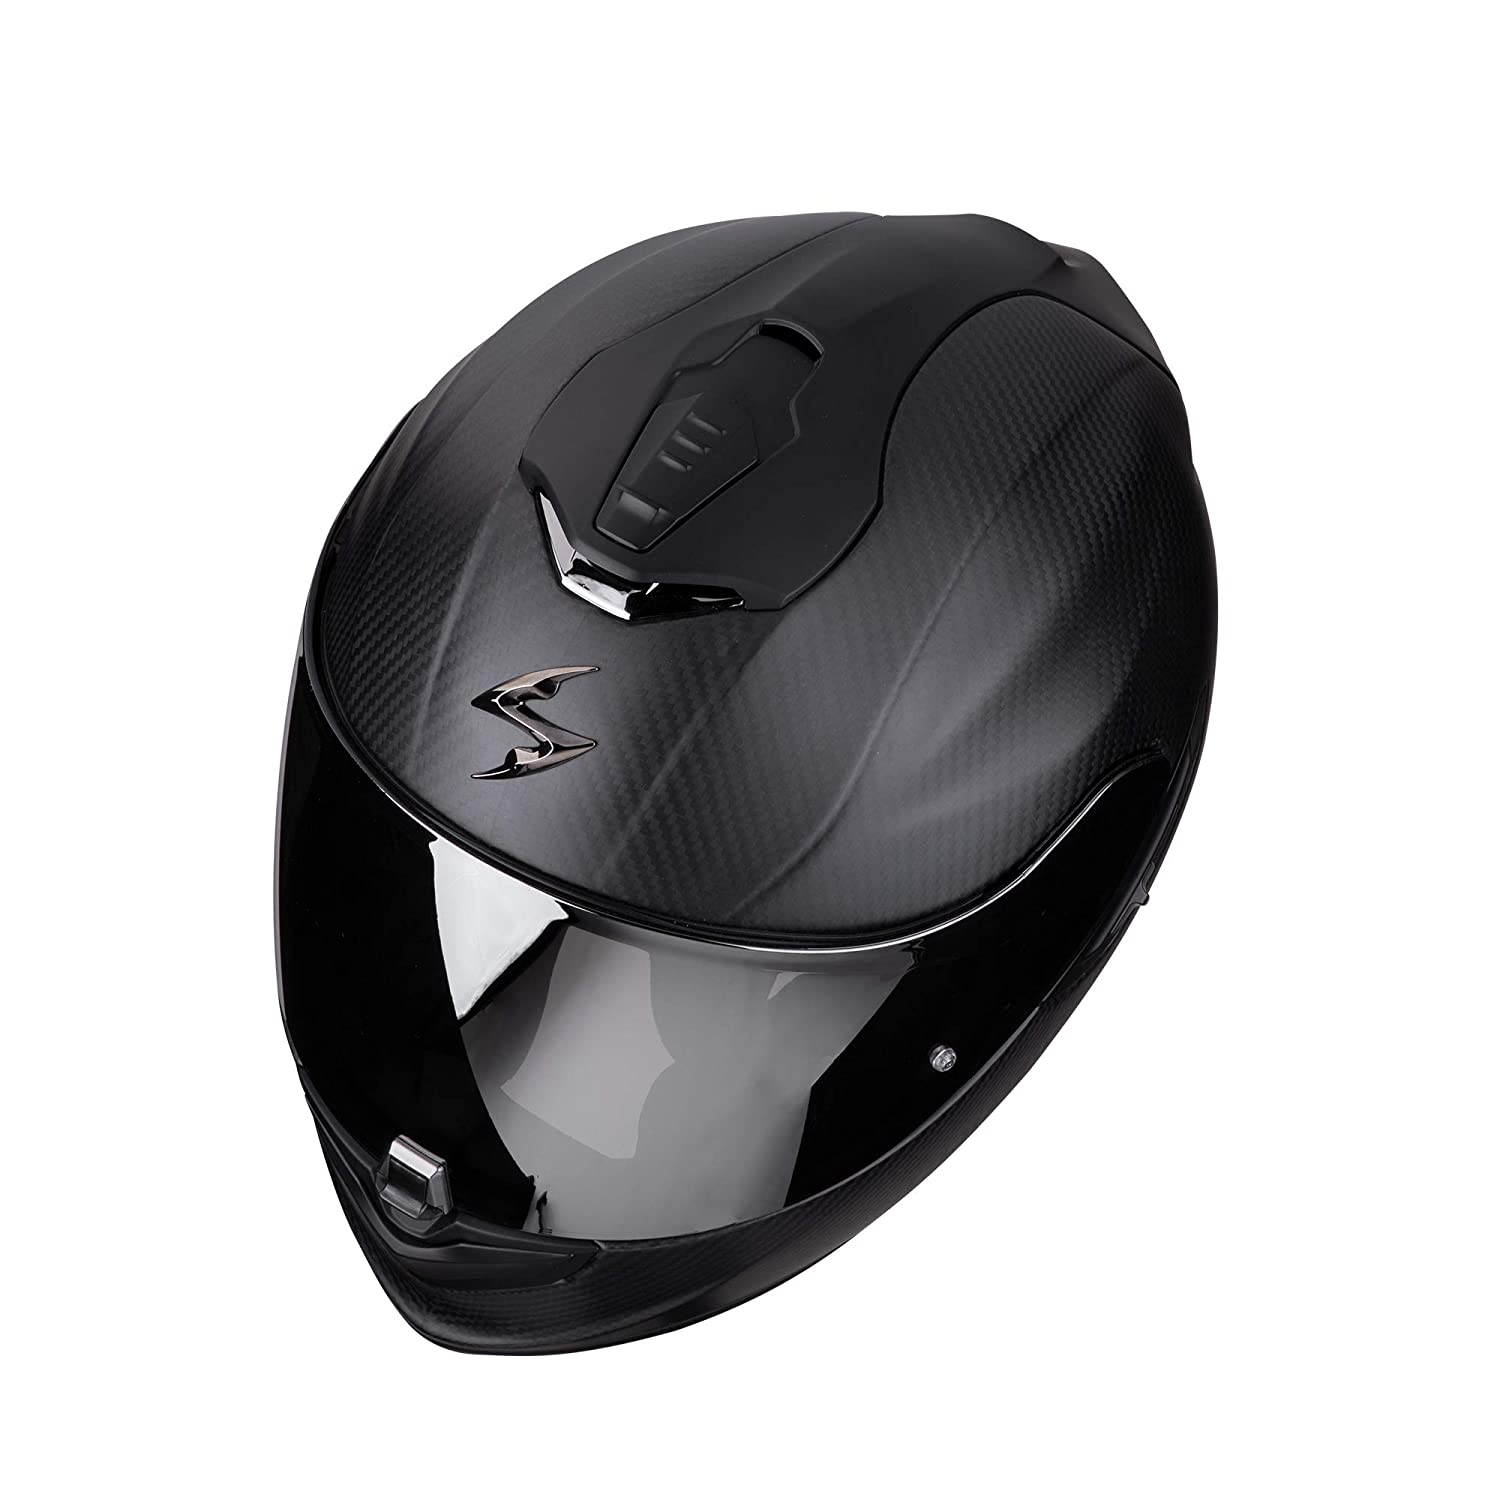 Scorpion 14-261-10-07 EXO-1400 Air Carbon Matt Black XXL